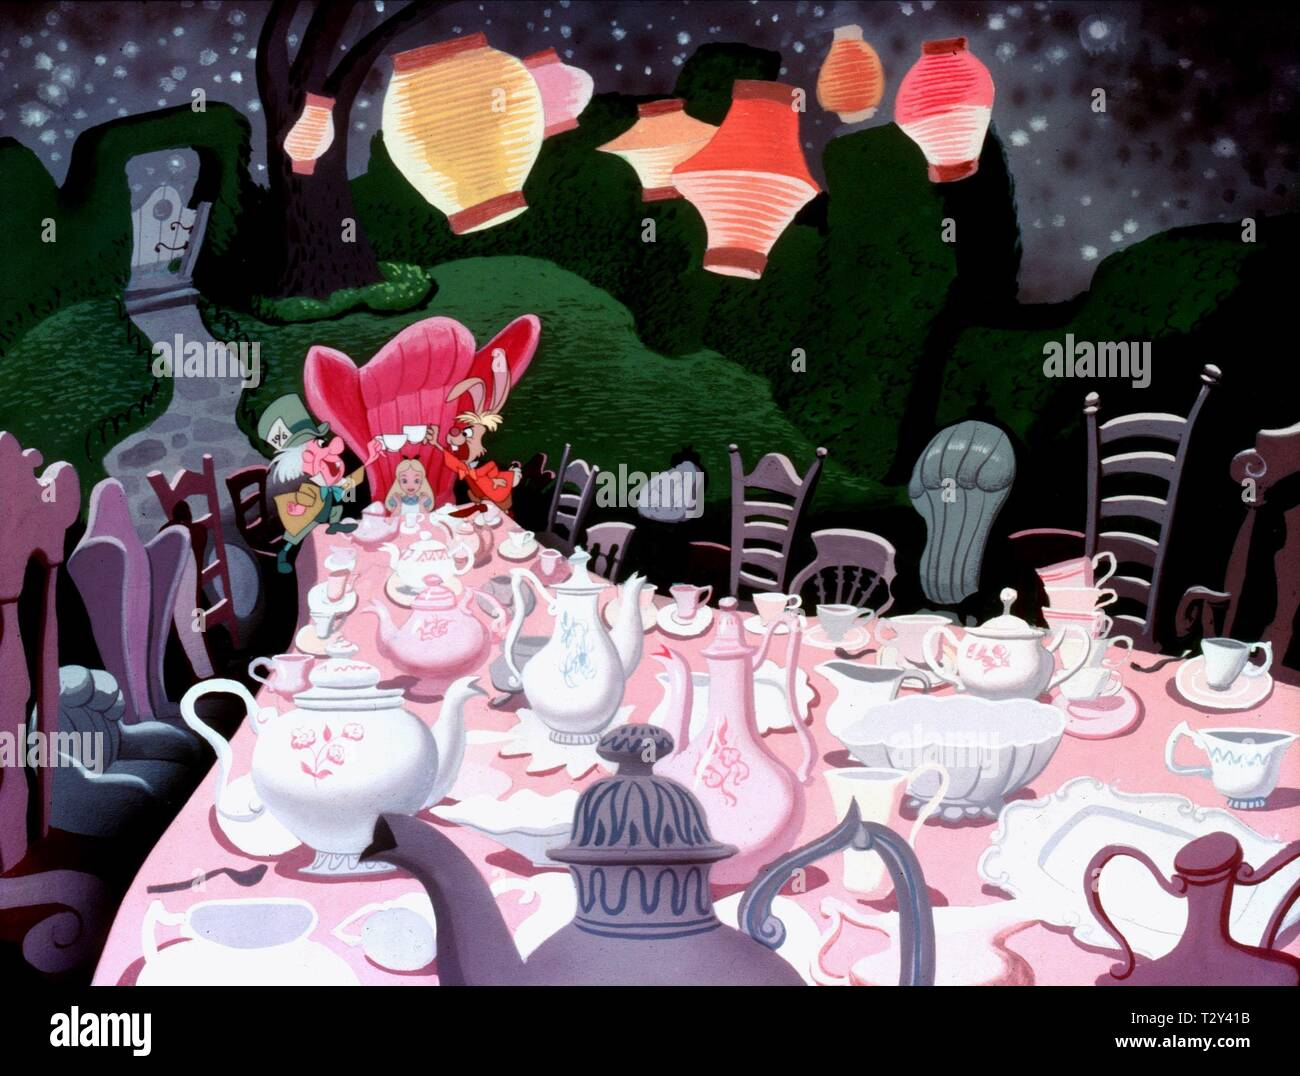 MAD HATTER, ALICE, MARCH HARE, ALICE IN WONDERLAND, 1951 - Stock Image